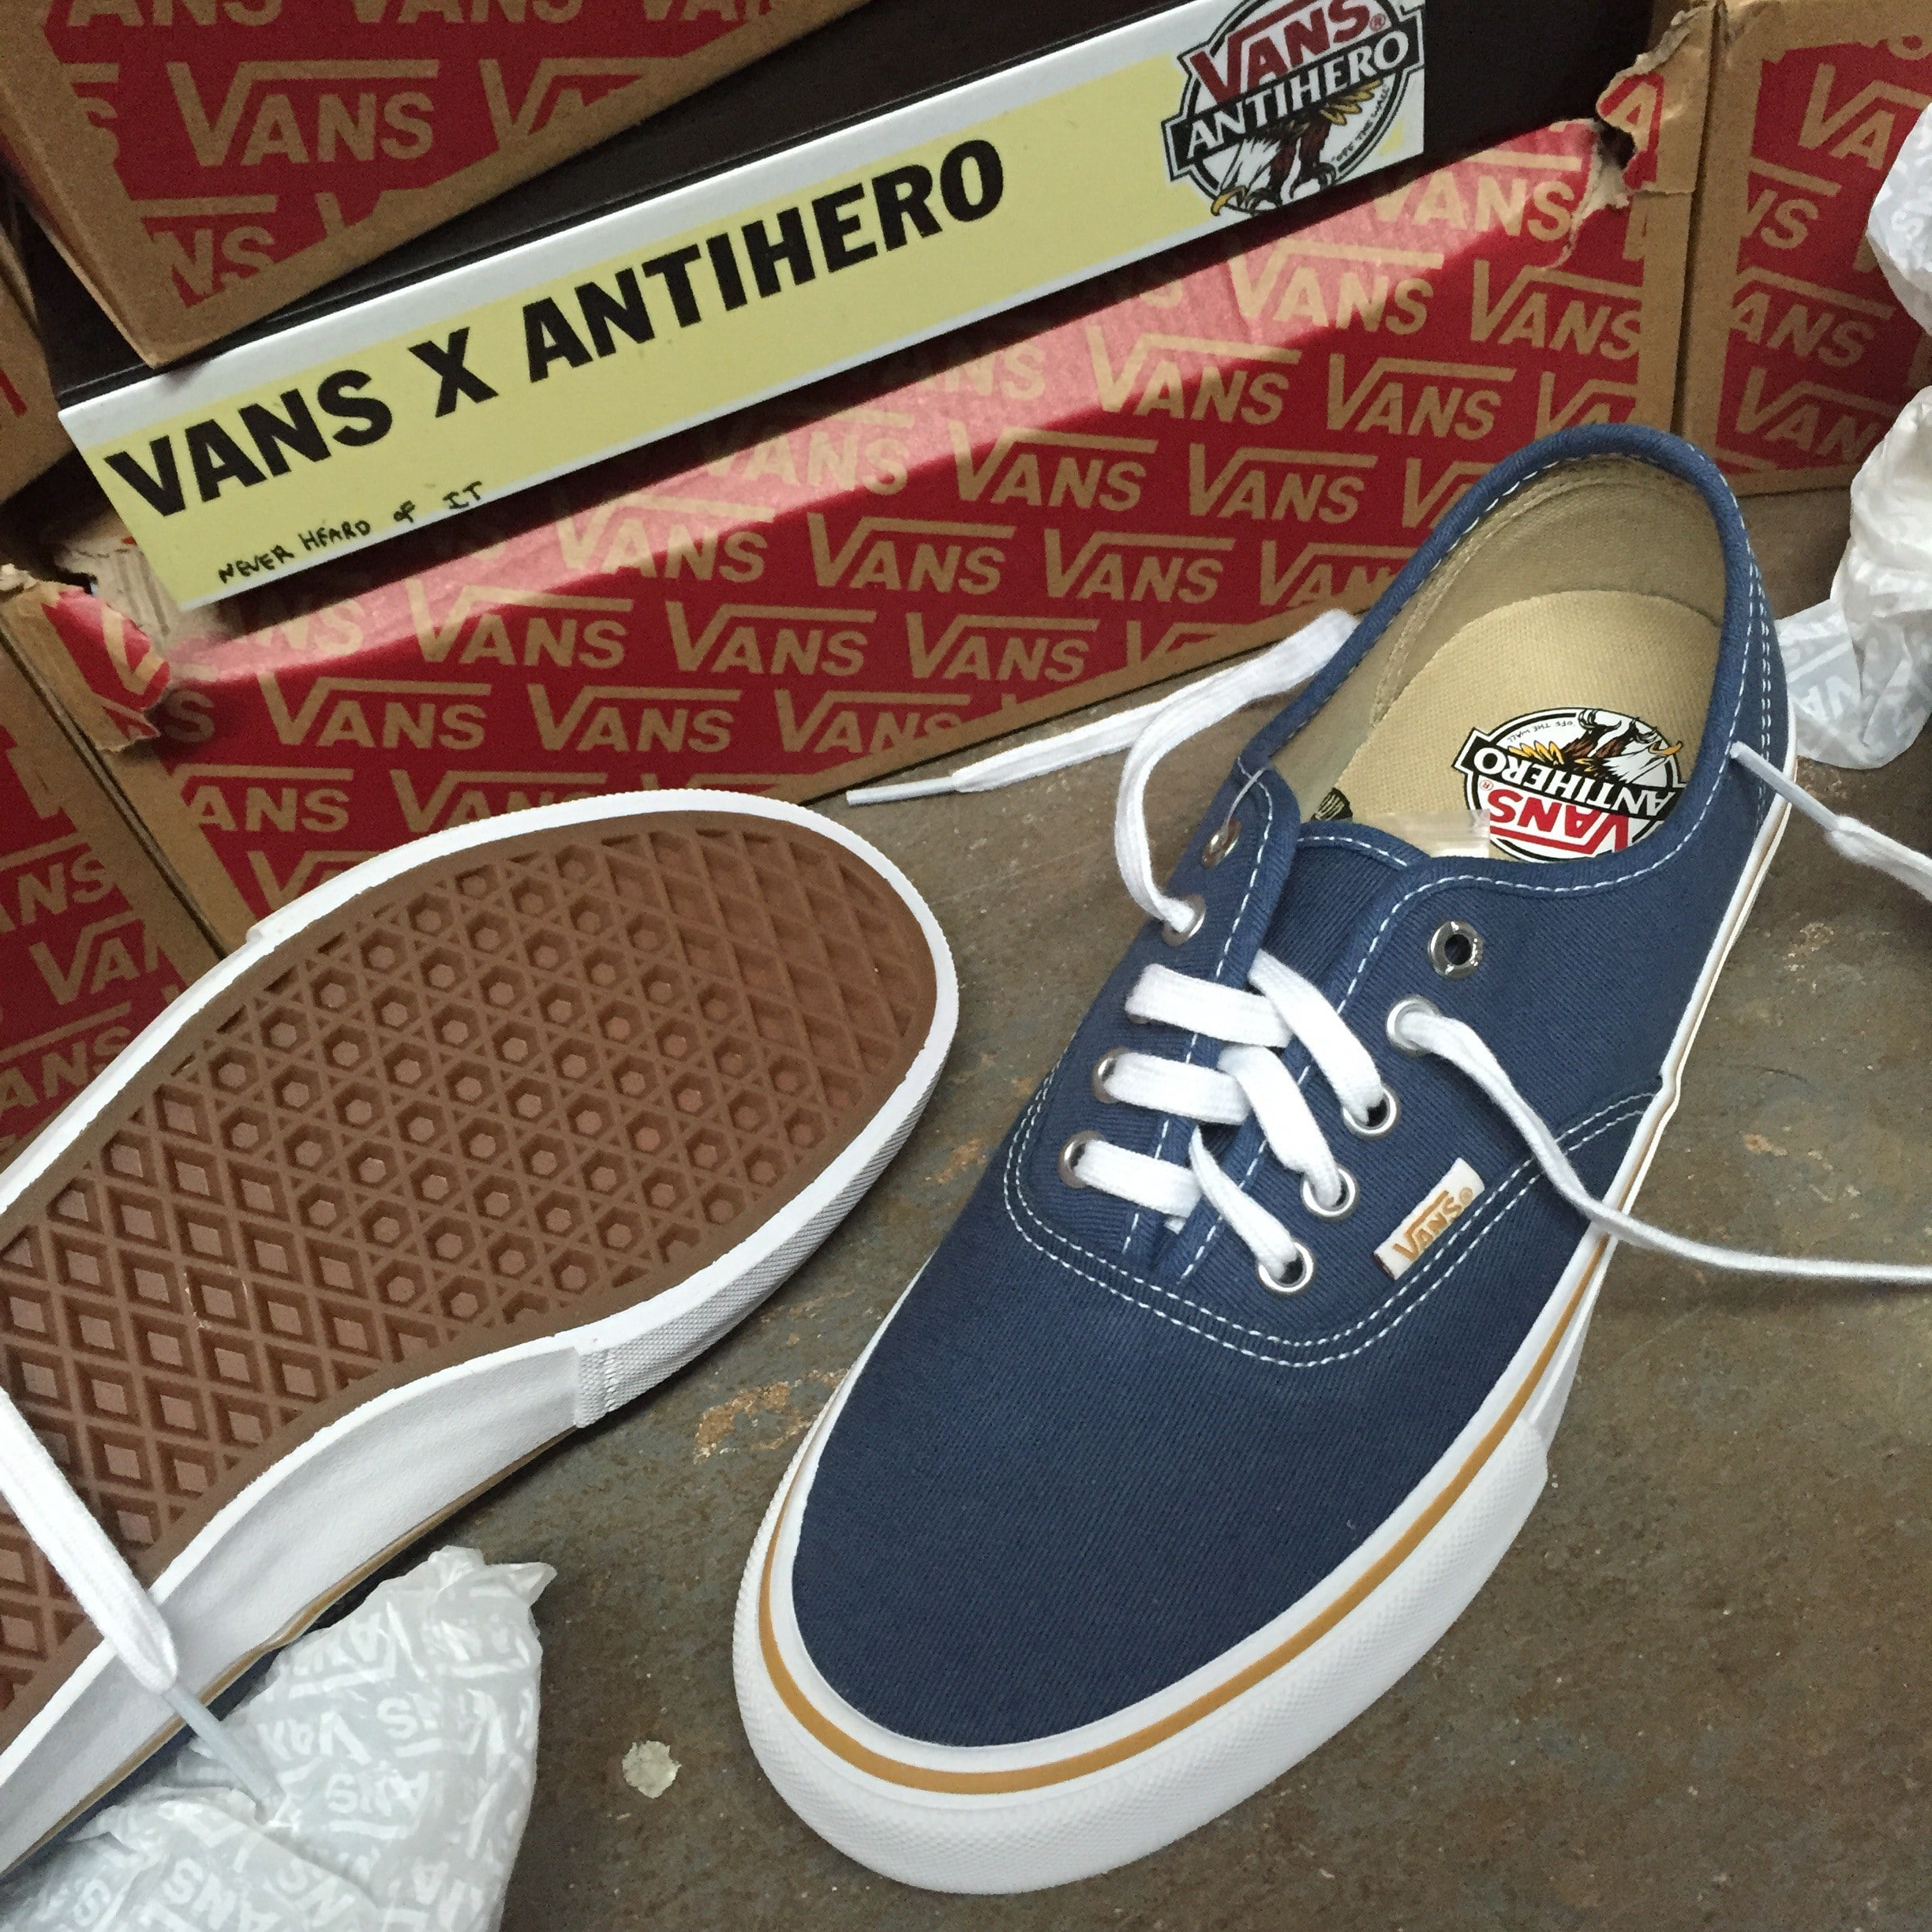 Vans x Antihero Authentic Pro Julien Stranger